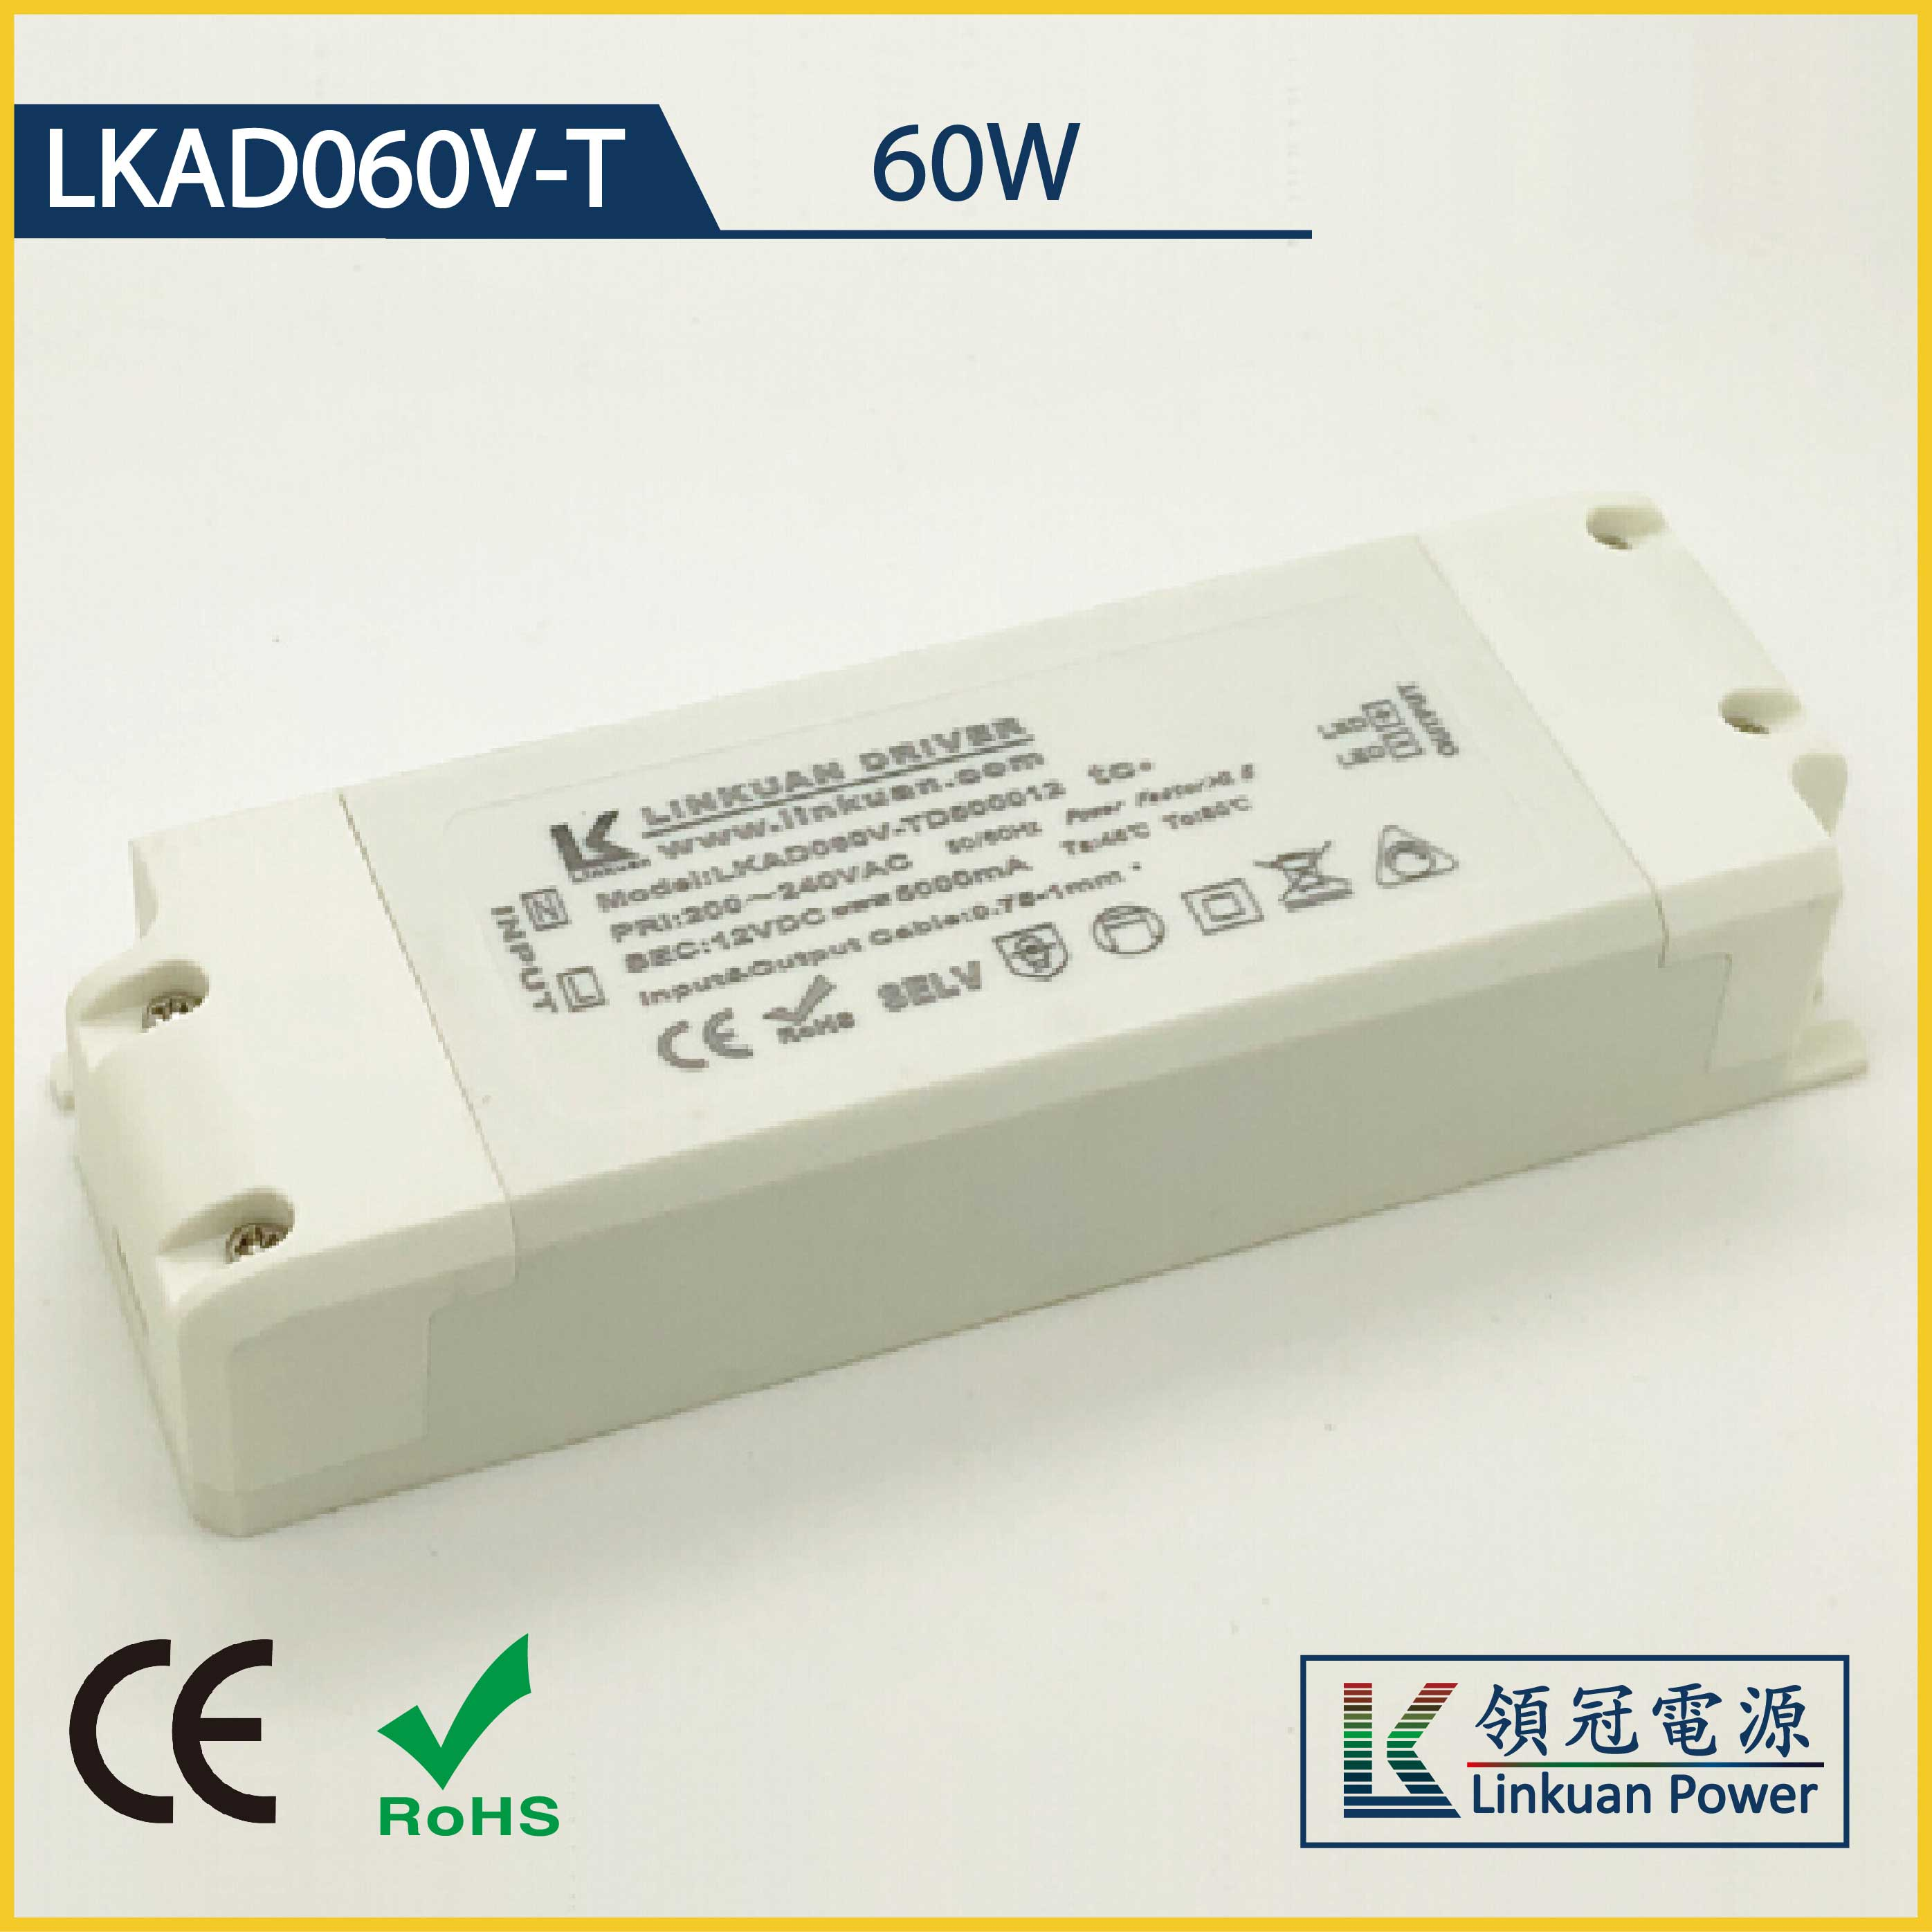 LKAD060V-TD 60W constant voltage 12/24V 5A/2.5A triac dimmable led driver